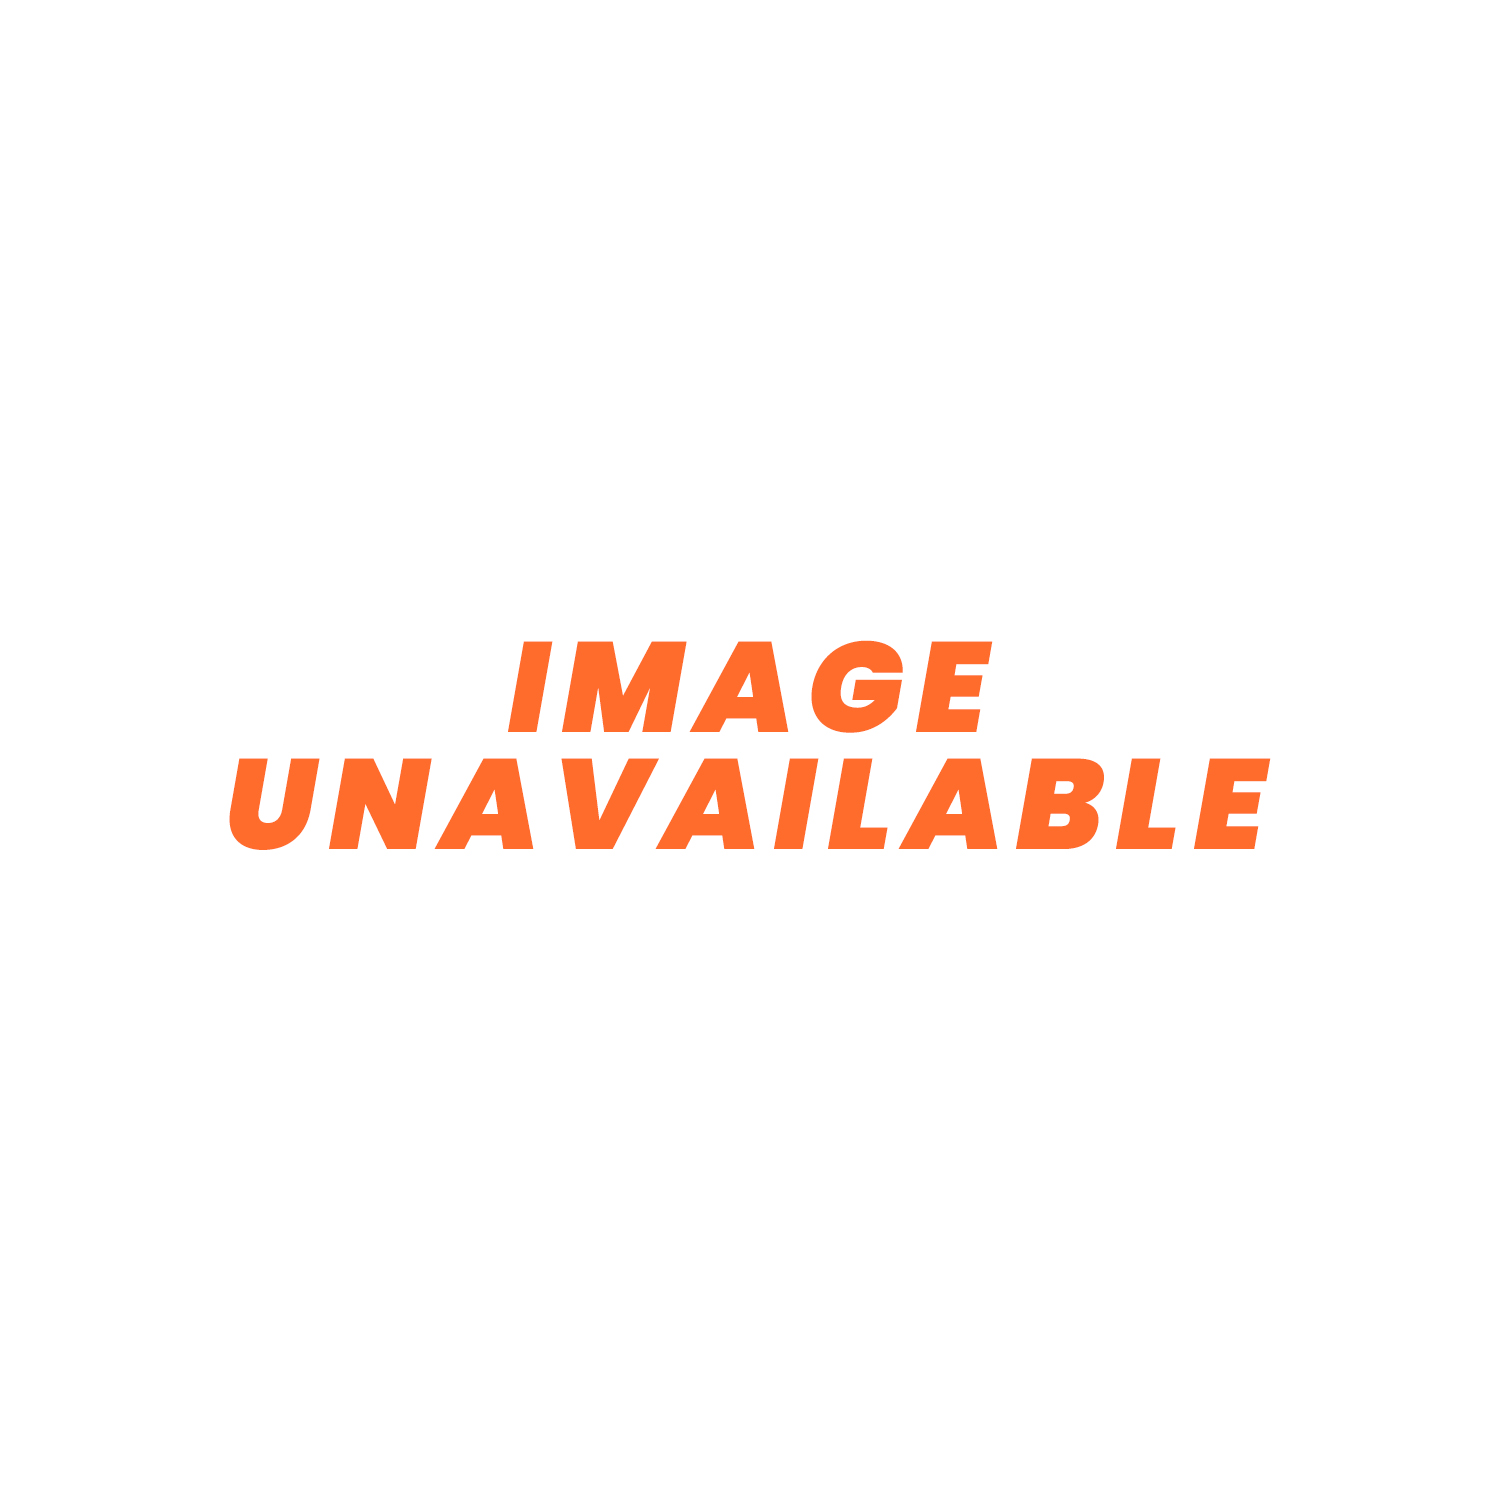 Jubilee 'O' Clip 304 Stainless Steel 3 - 5mm Dia Hose Clamp